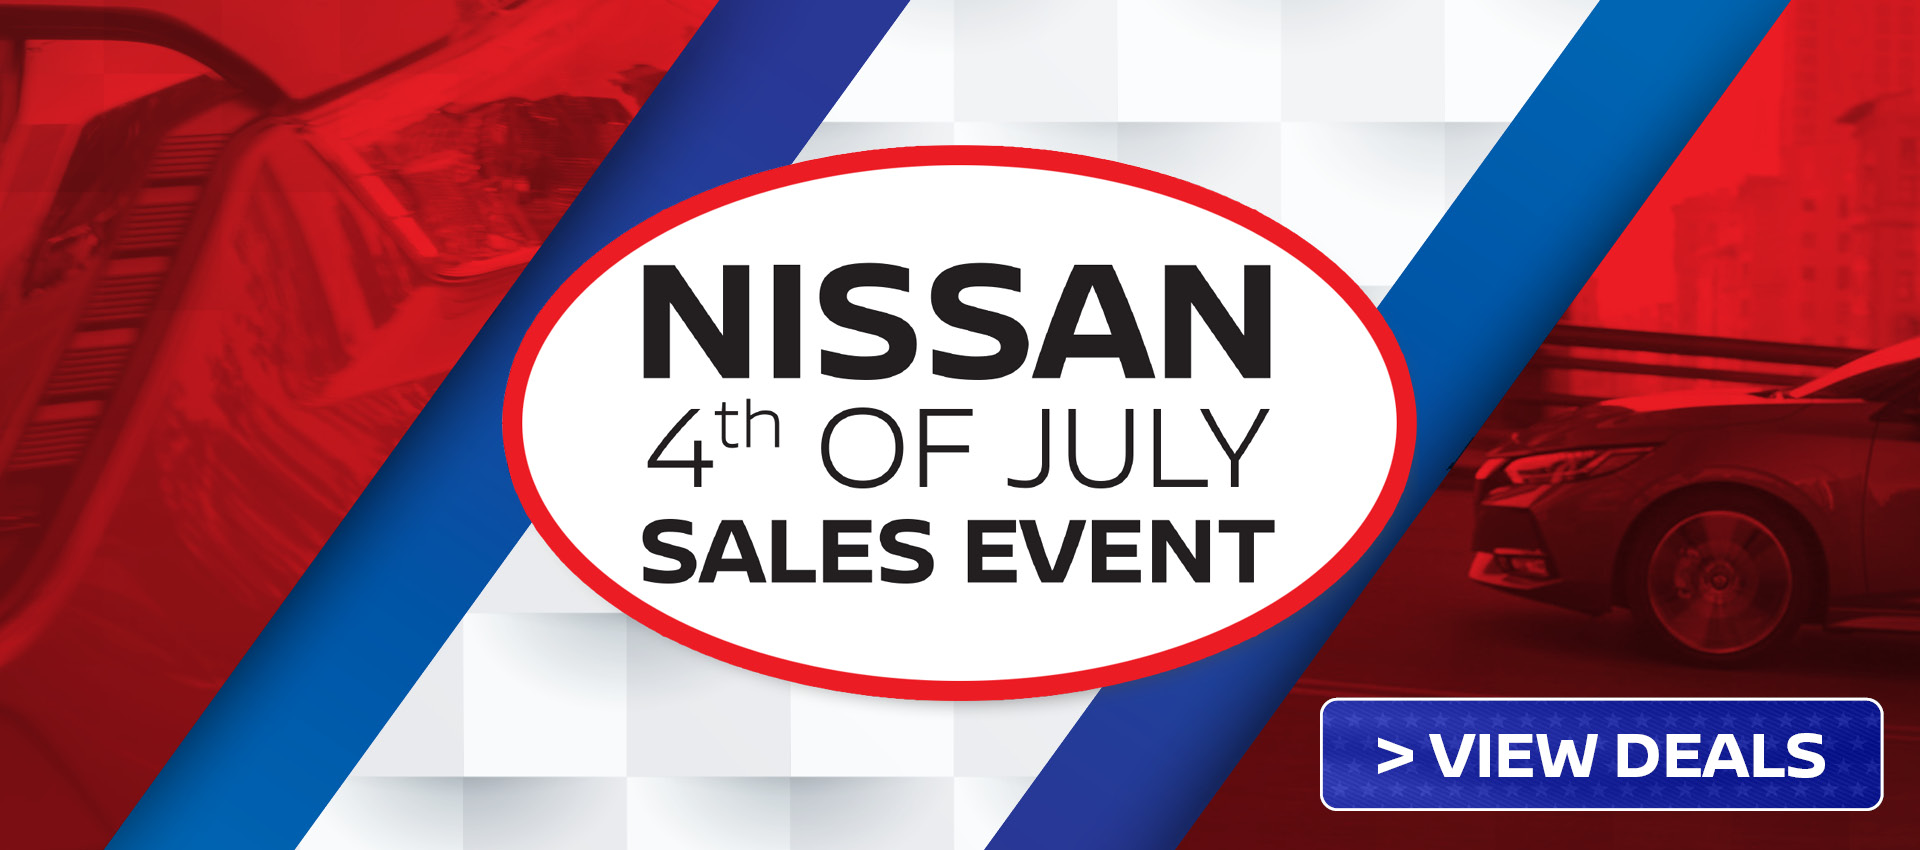 Mossy - Nissan Sales Event HP